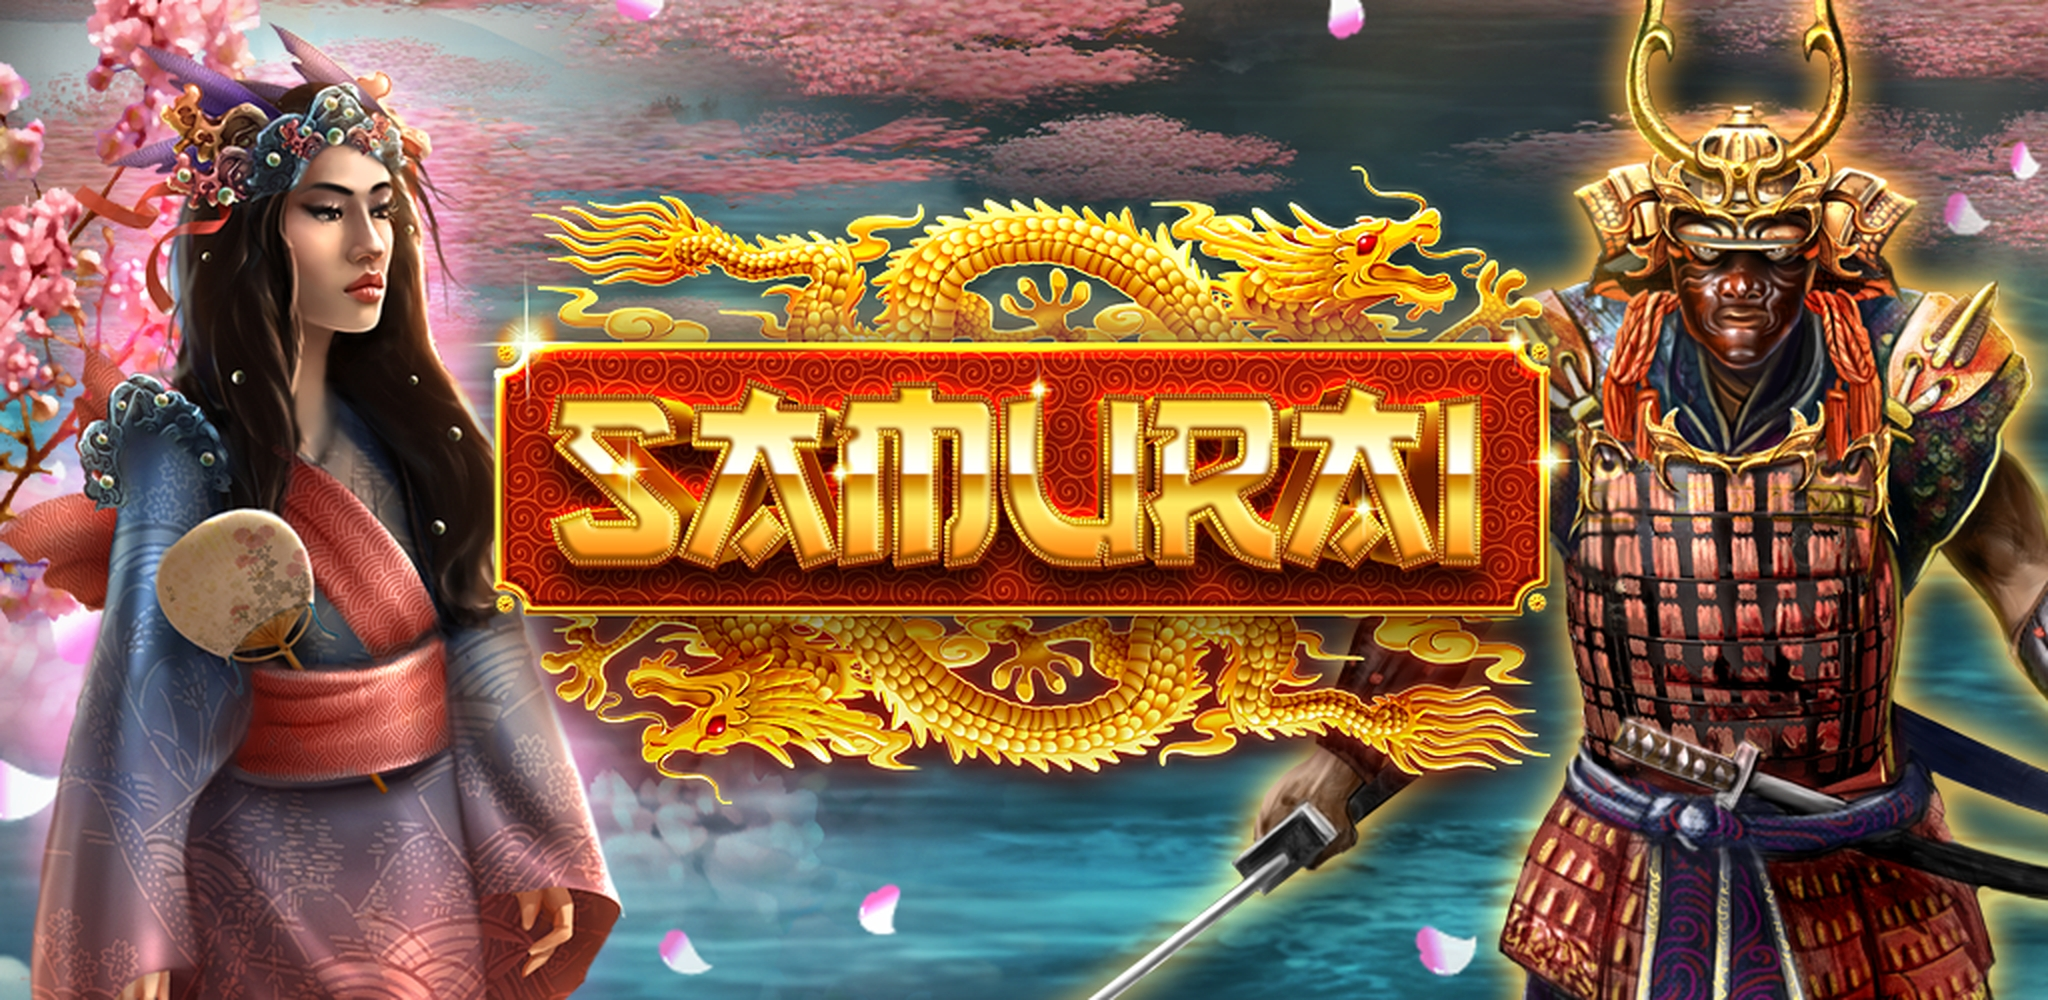 The Last Samurai Online Slot Demo Game by LionLine